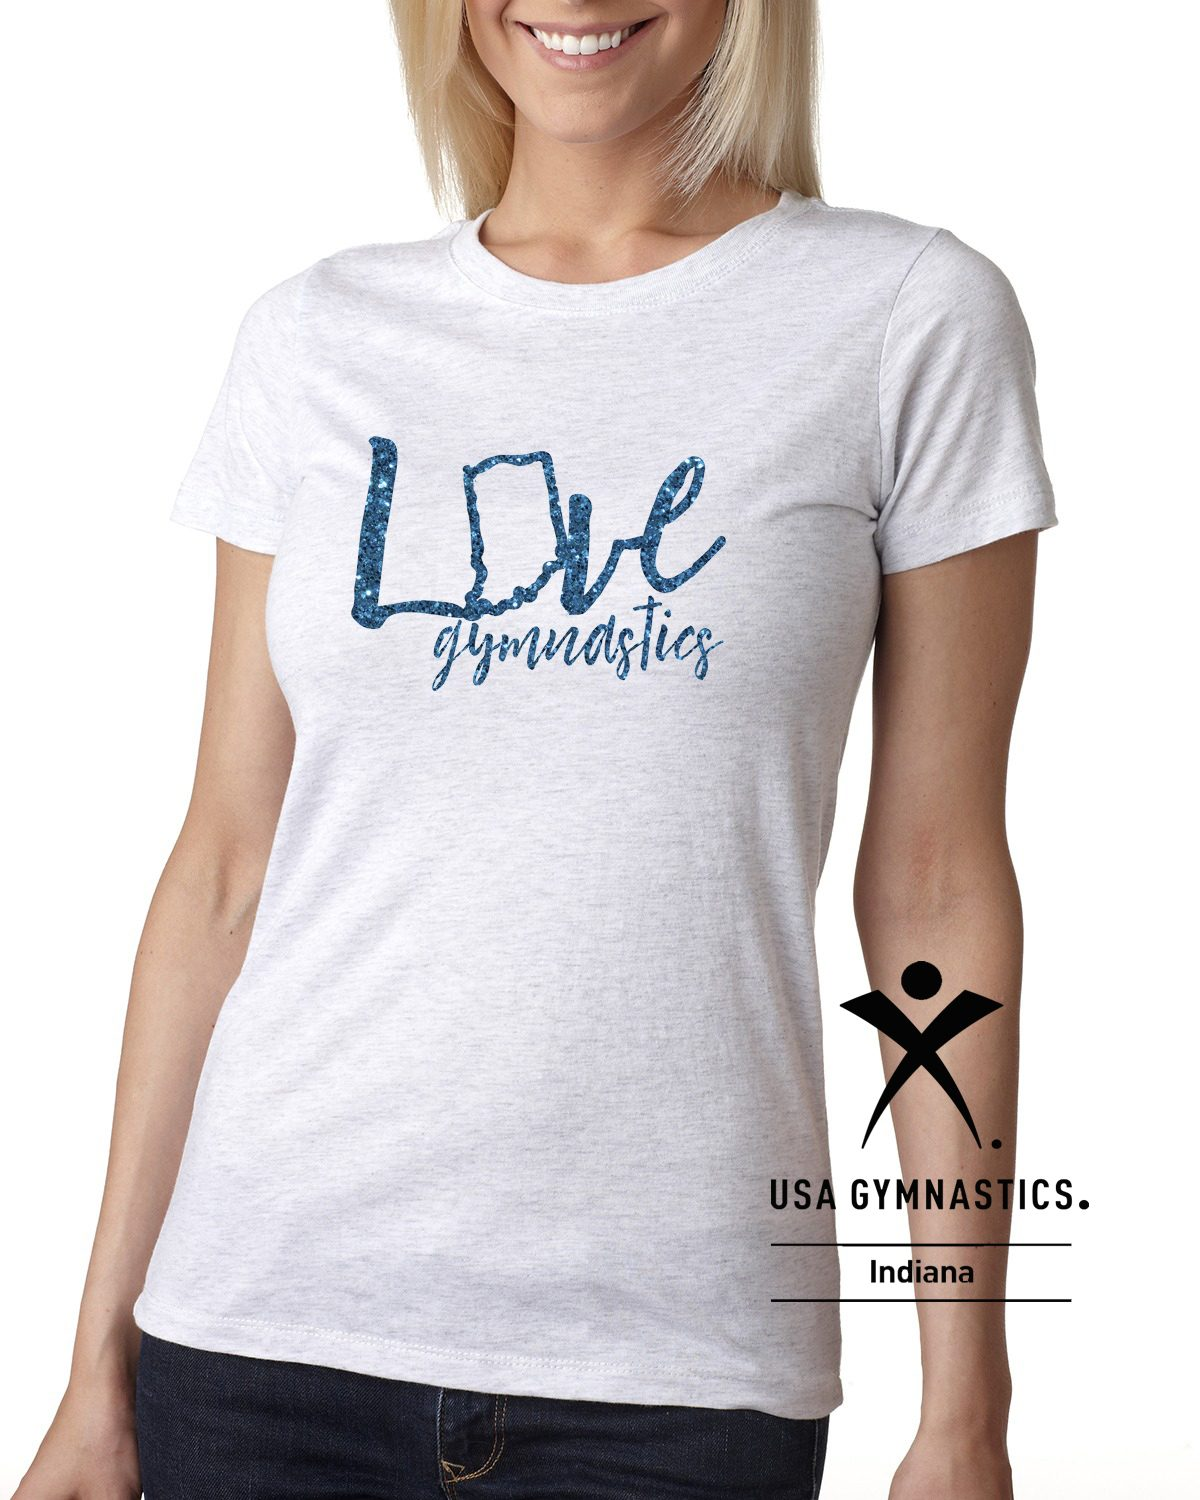 Indiana USA Gymnastics LOVE Gymnastics Ladies Tee